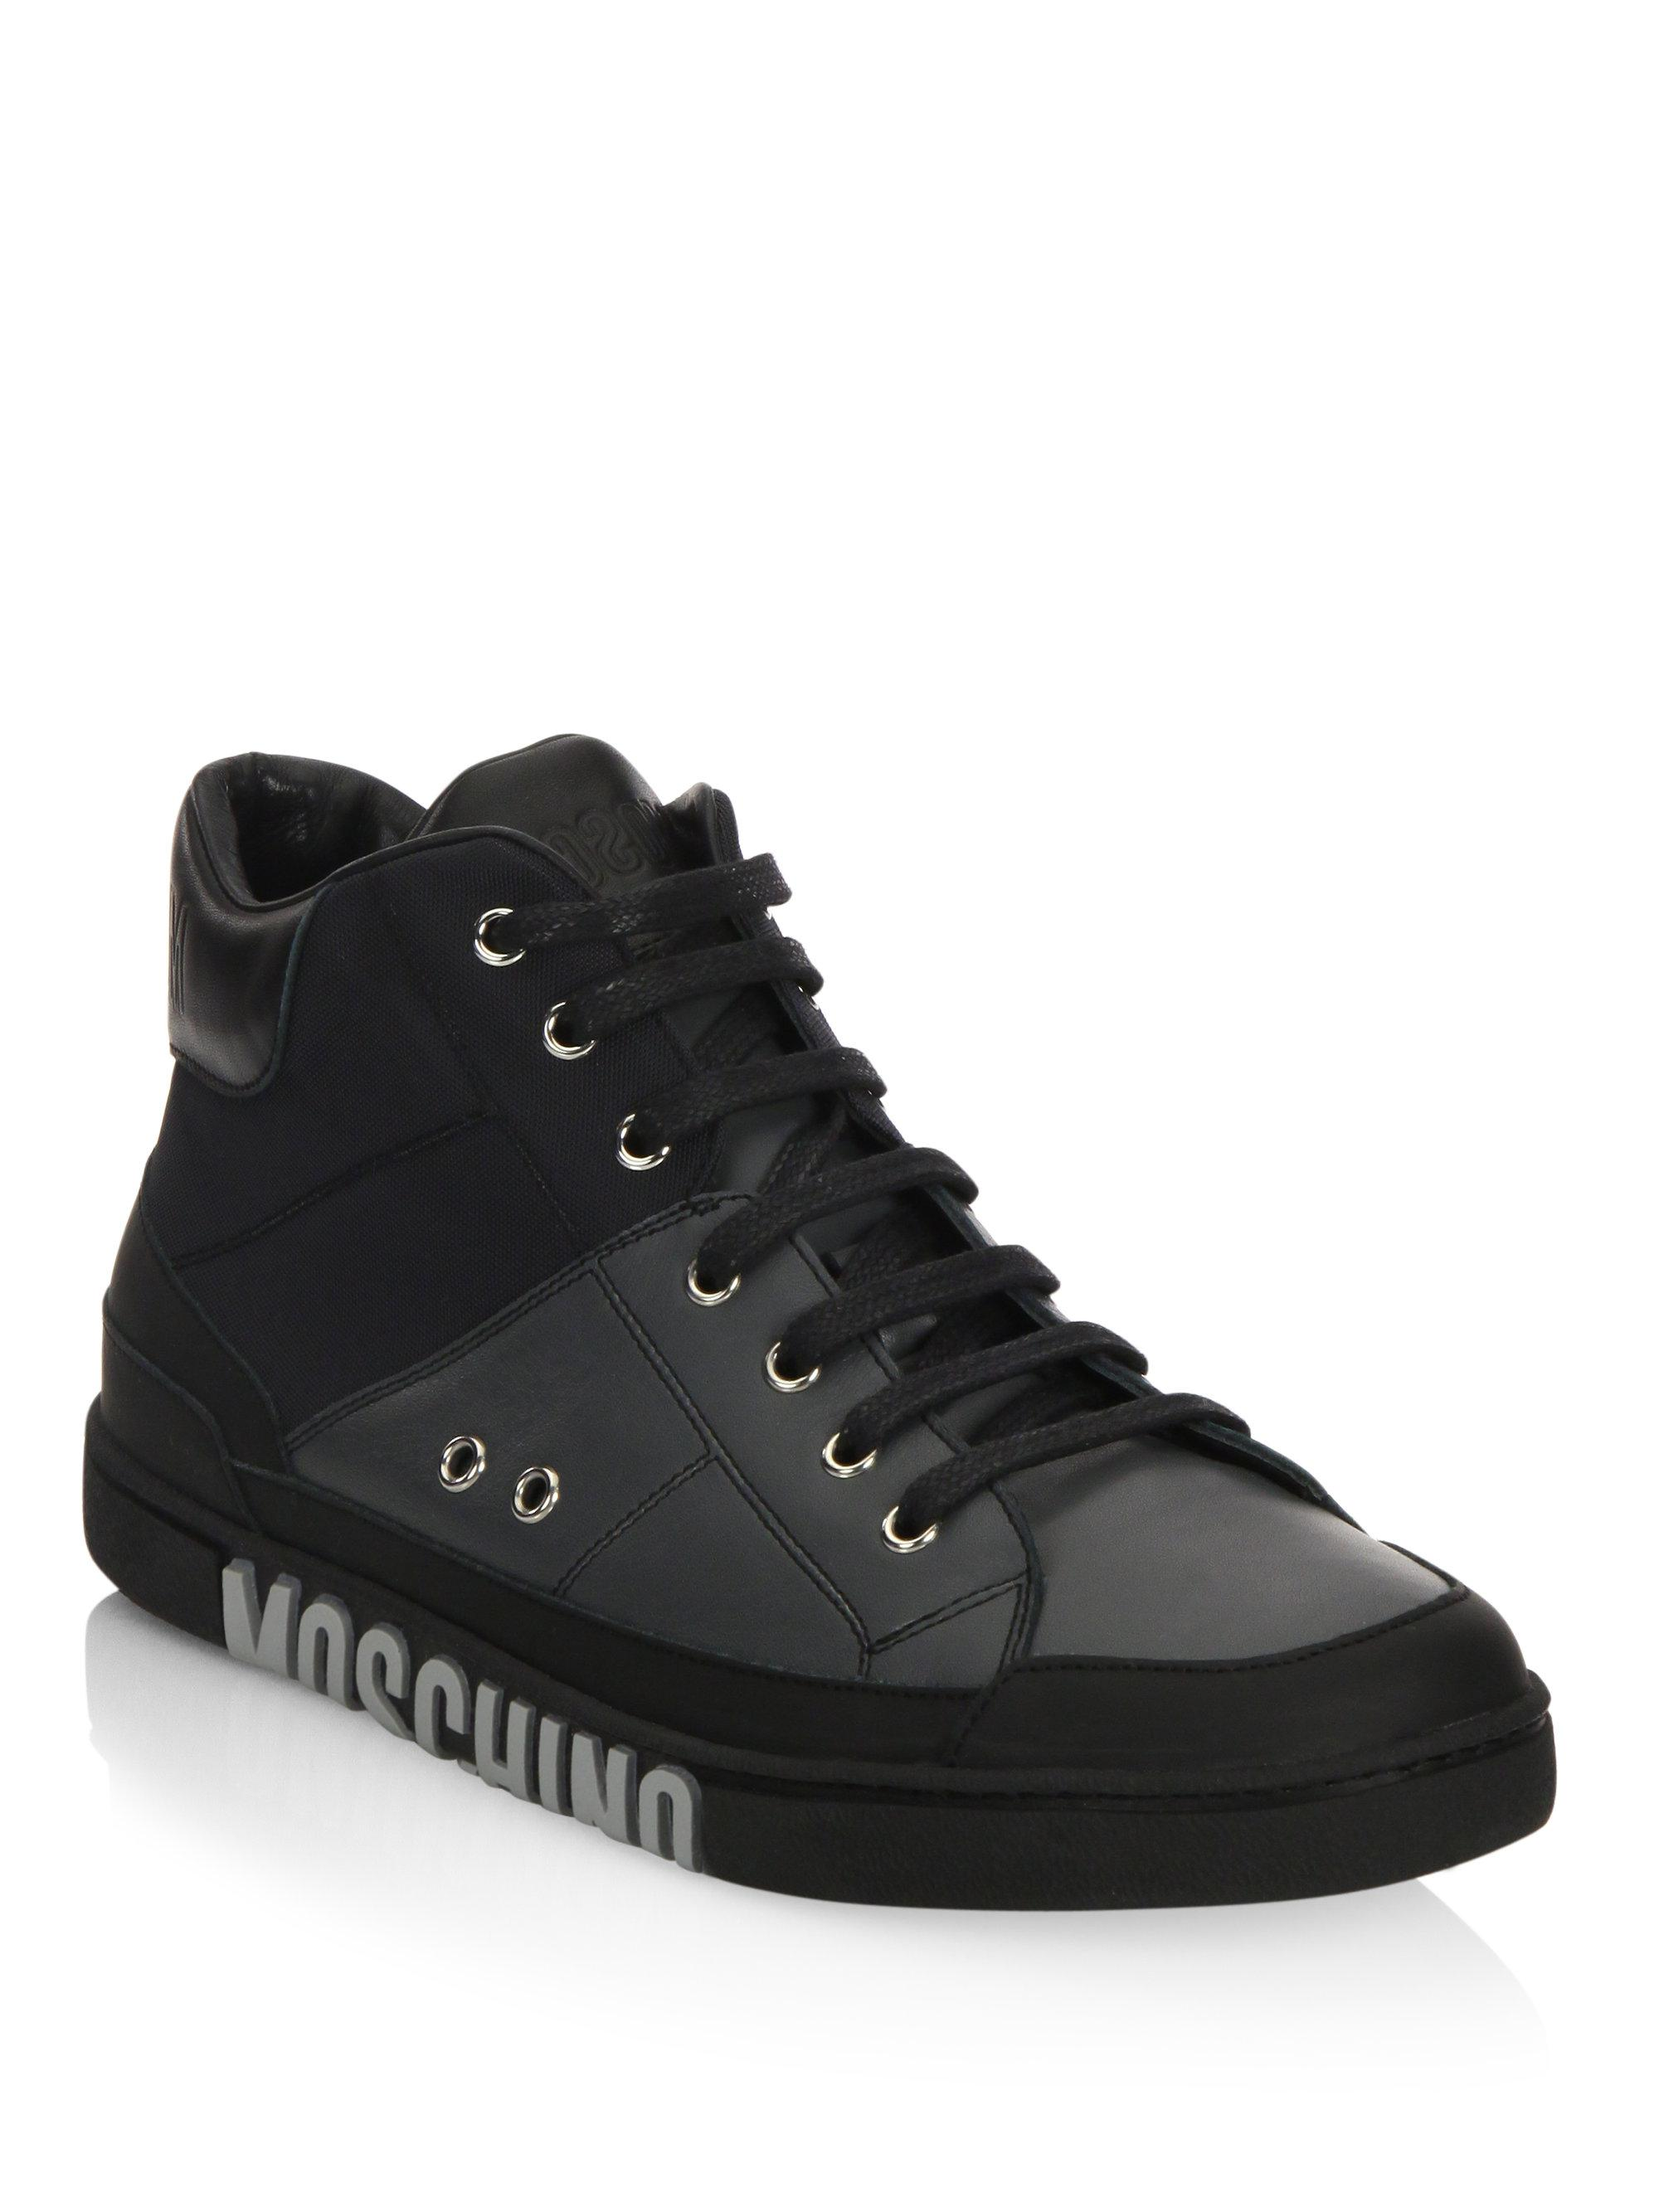 MoschinoMid-Top Lace-Up Sneakers